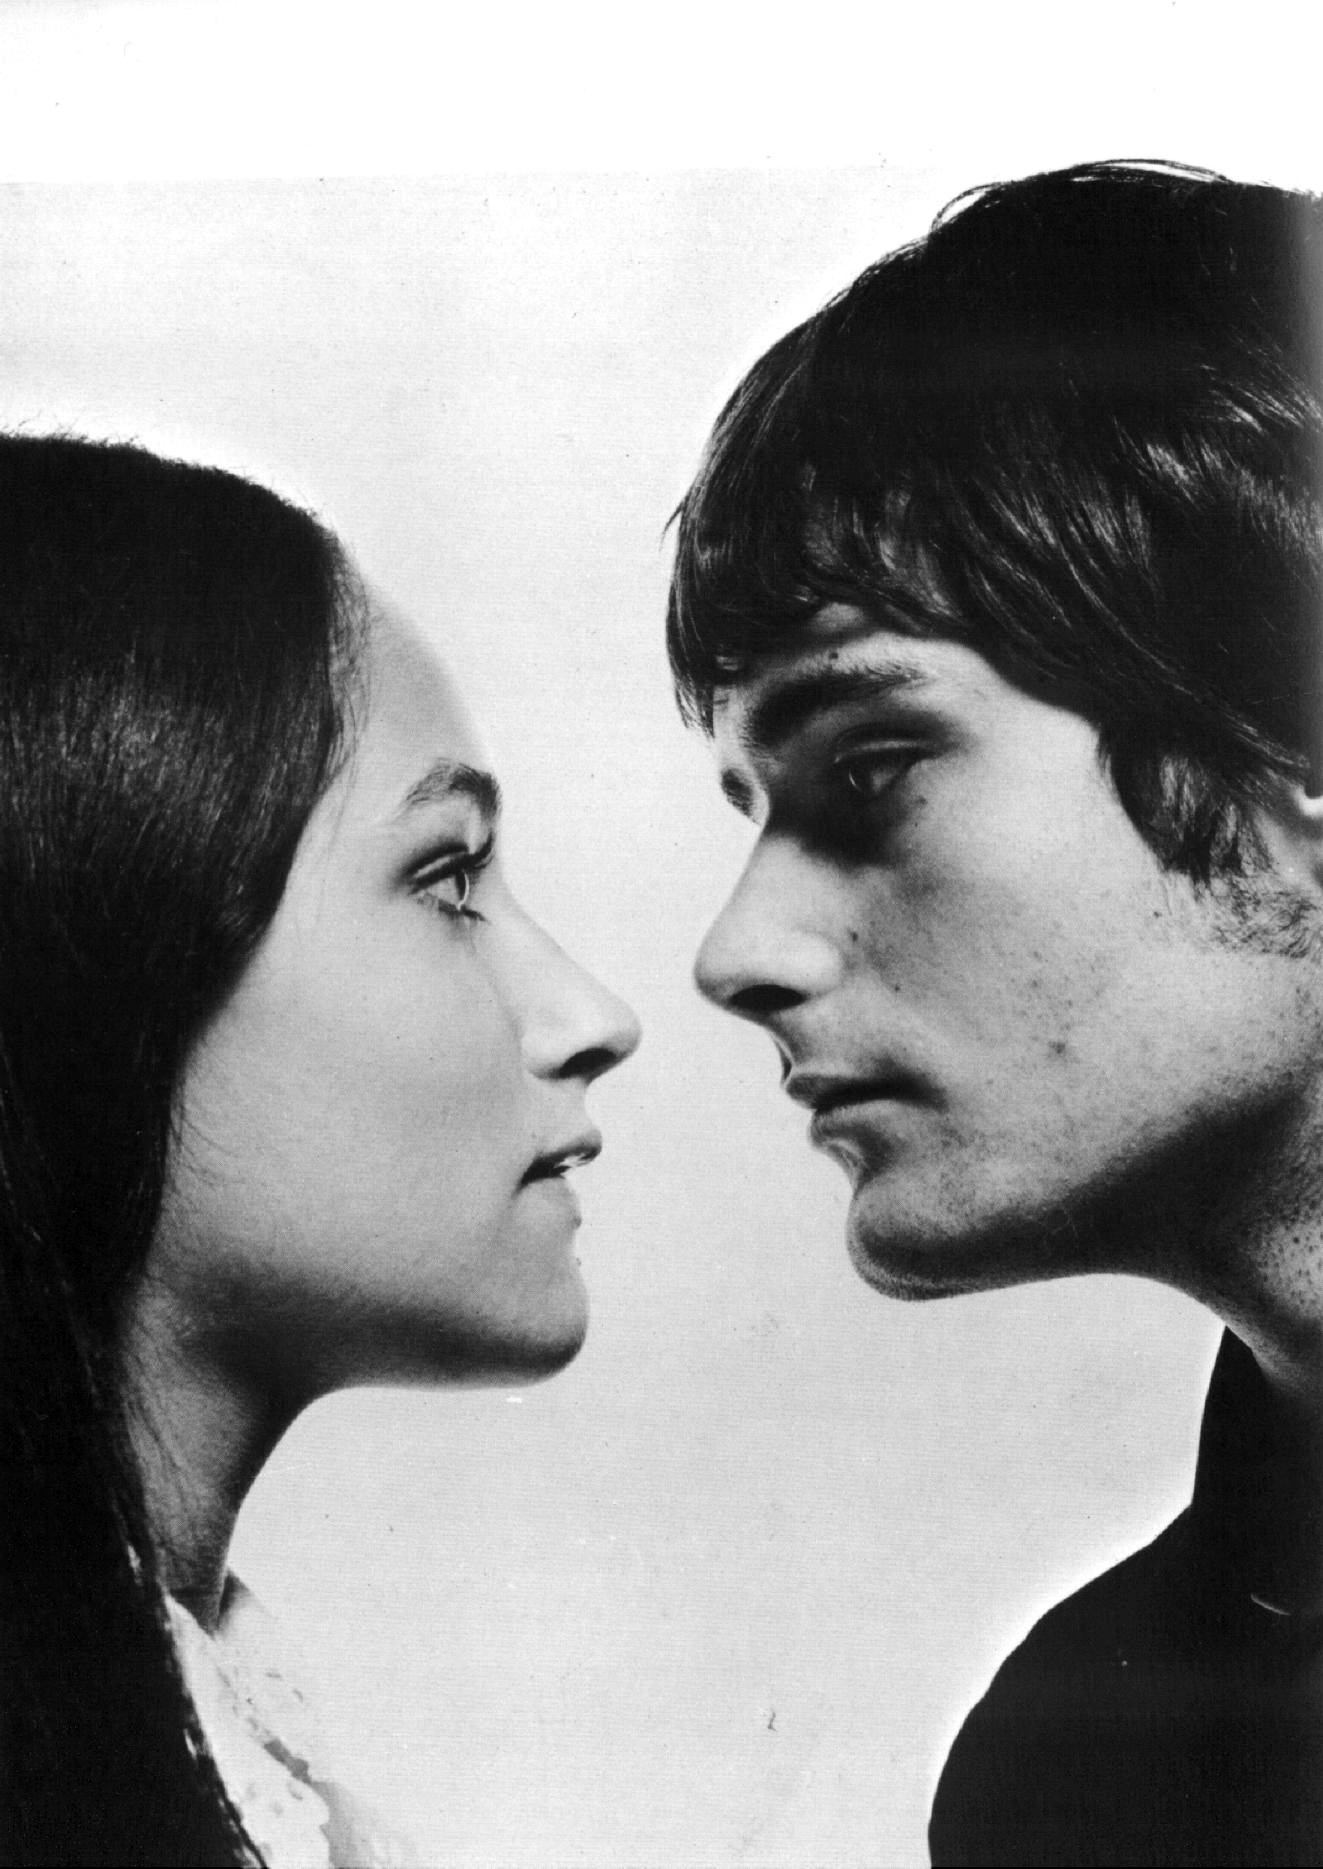 http://www.theplace.ru/archive/olivia_hussey/img/683cb96a86bd.jpg